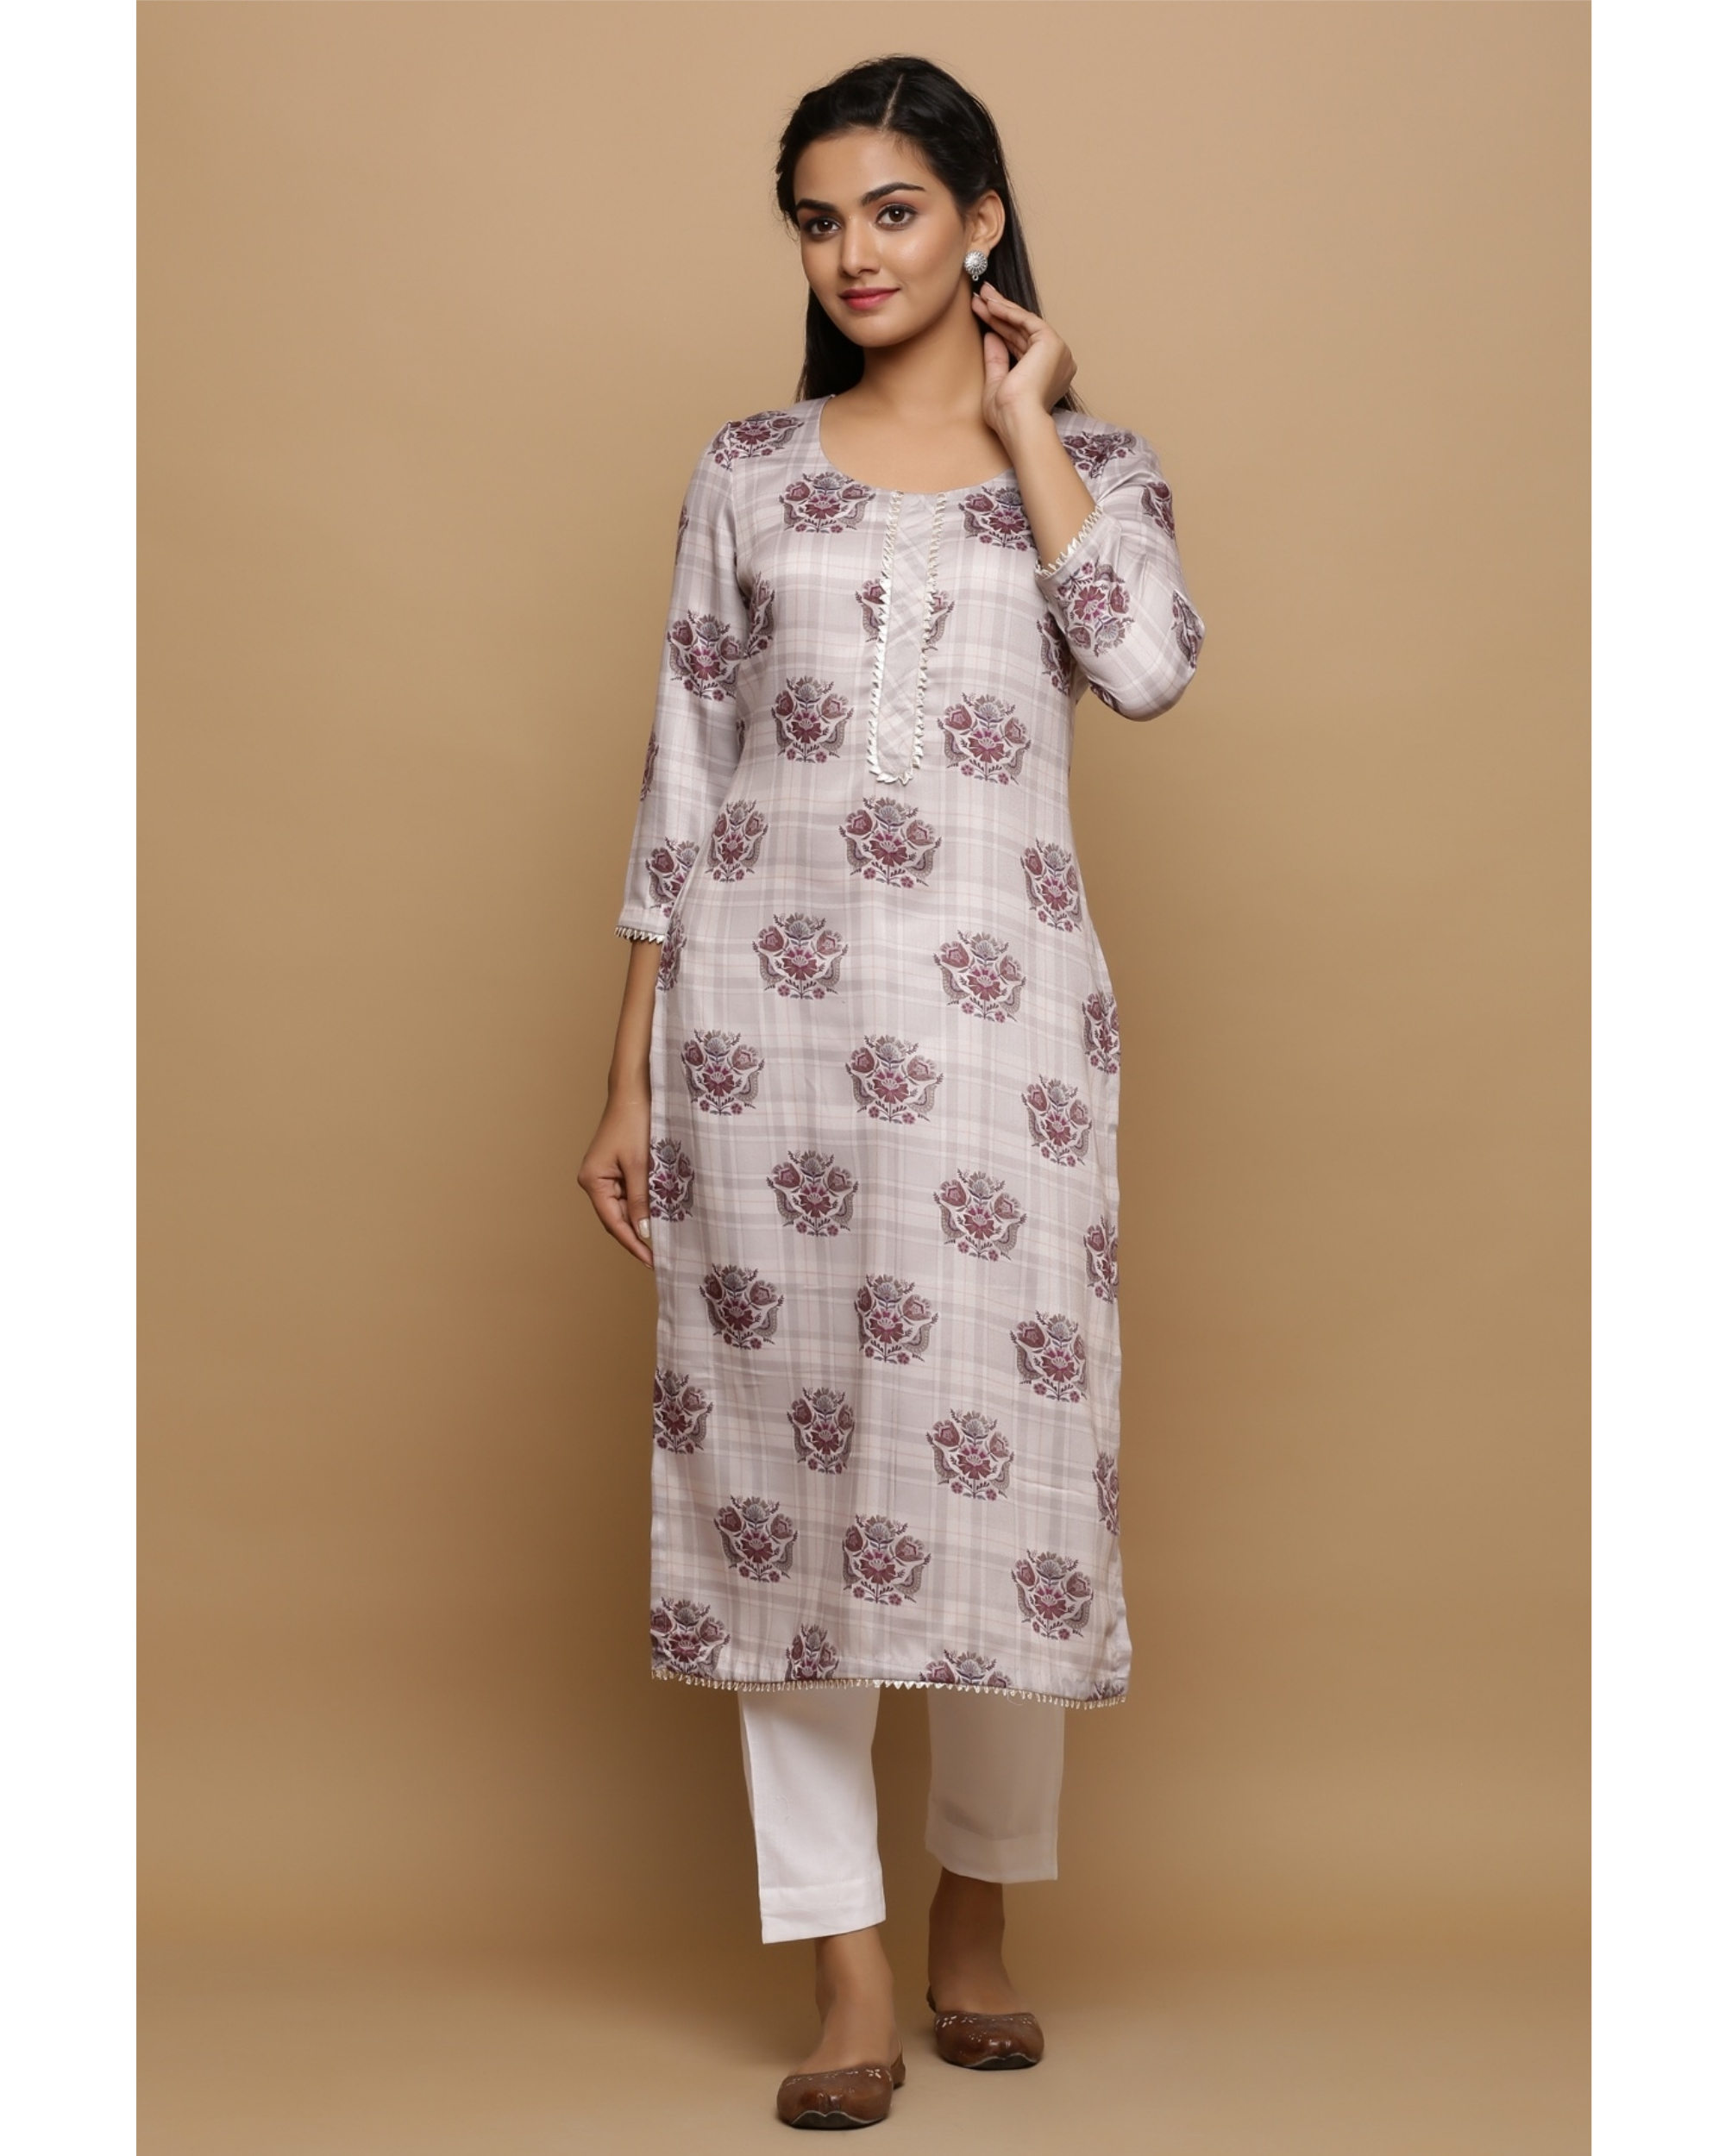 Ivory checkered kurta with floral prints